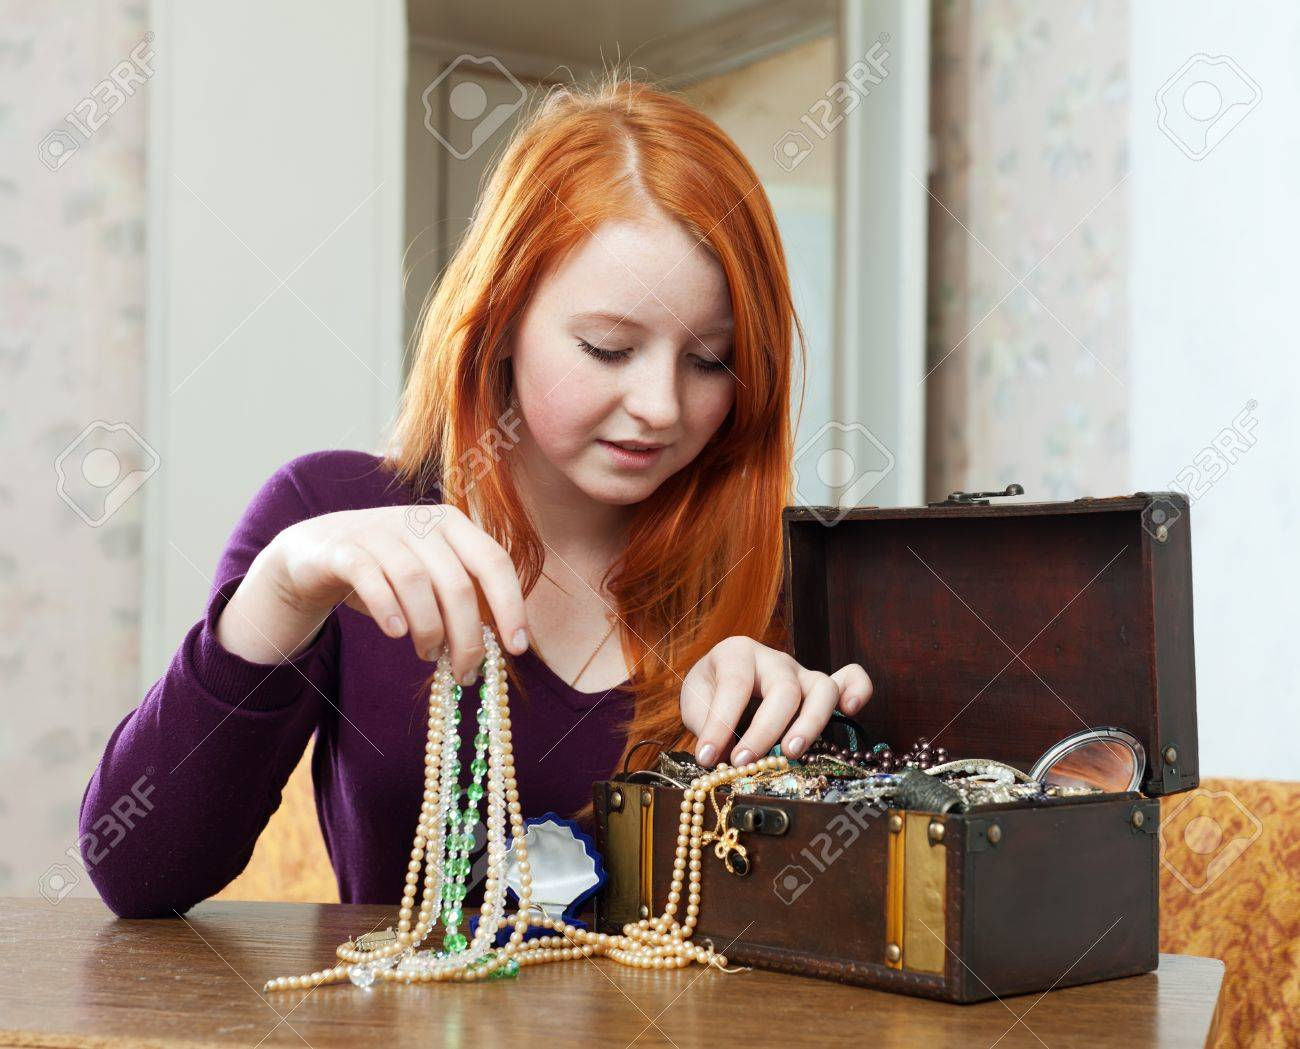 Stock Photo - teen girl chooses jewelry in treasure chest